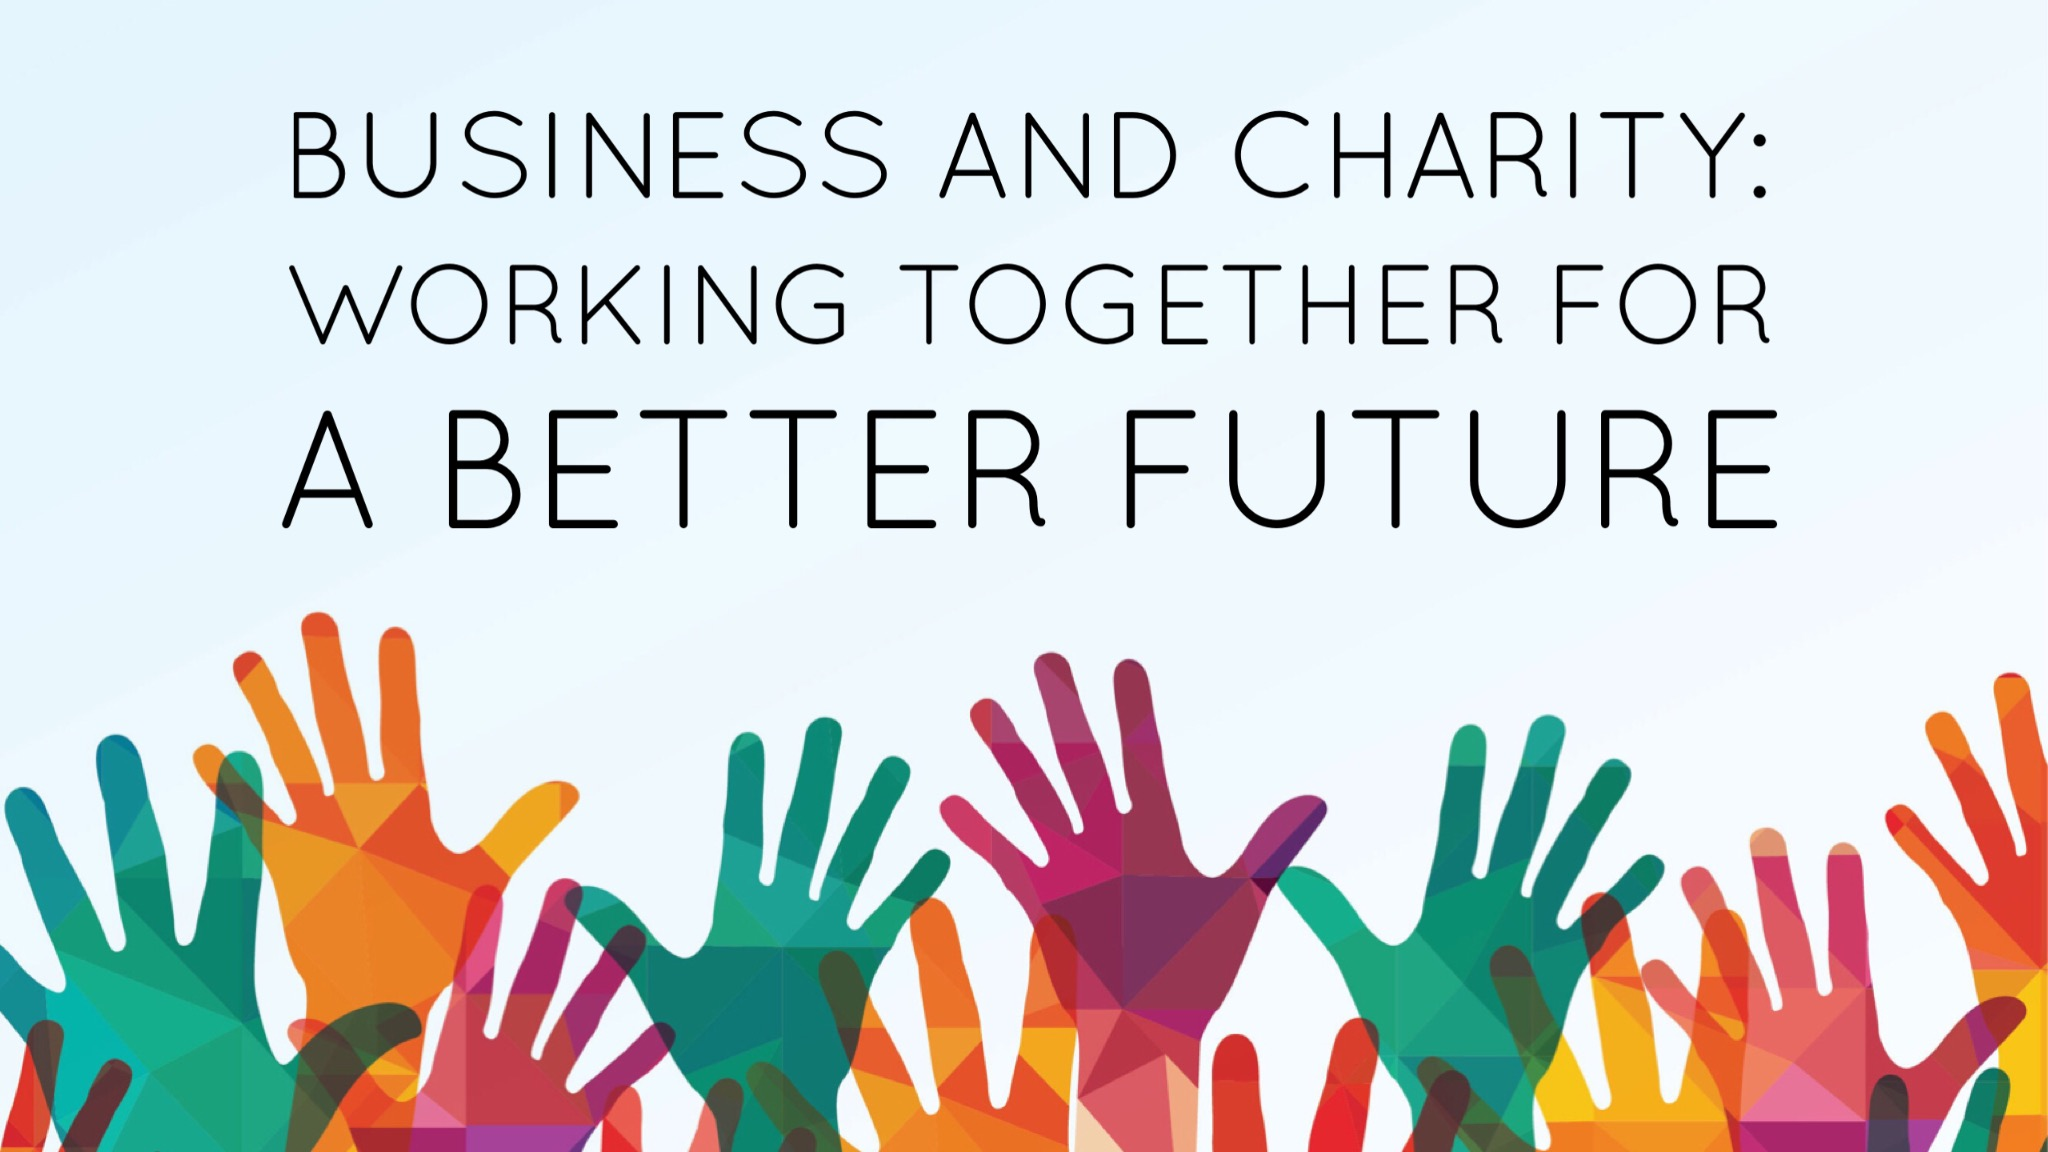 business-and-charity-working-together-for-a-better-future.jpg